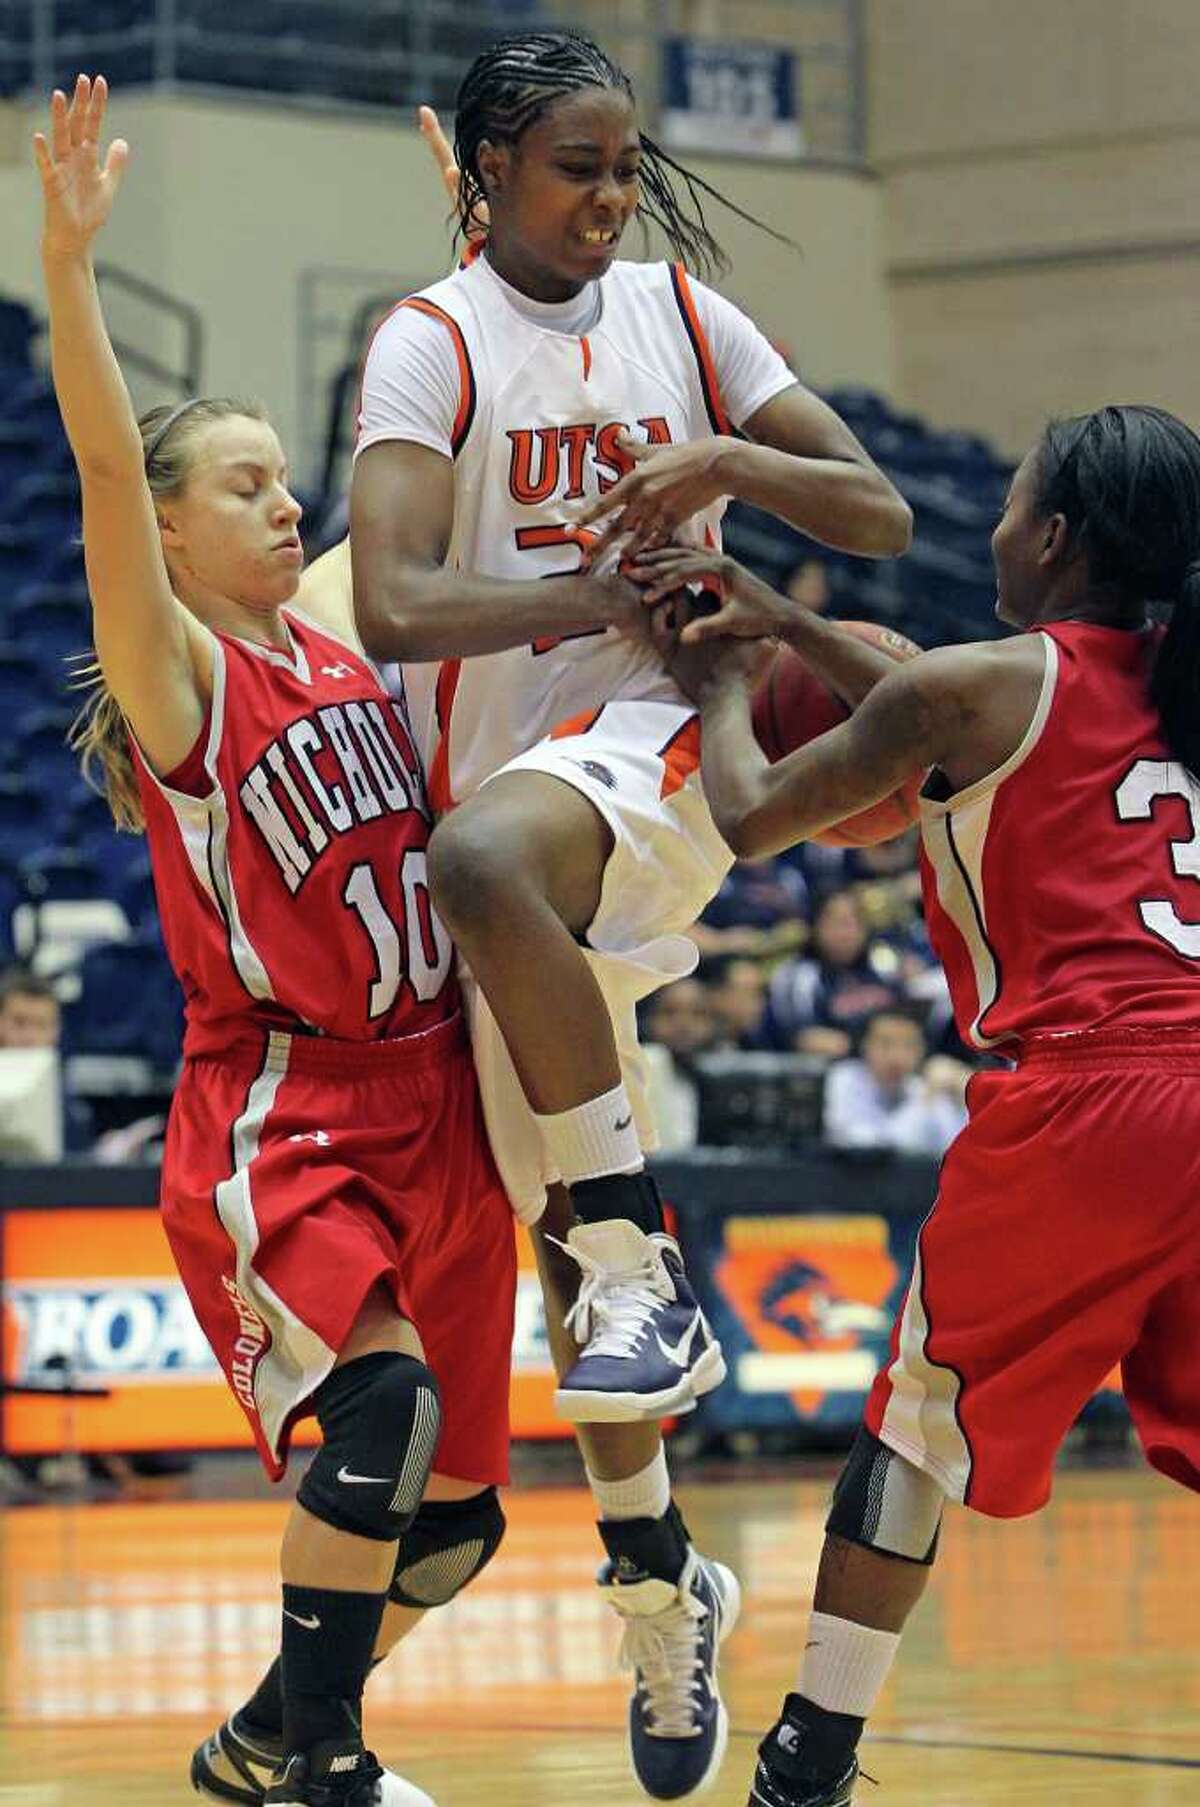 Ashley Gardner is stripped of the ball in the final moments of regulation by Nicholls player Ricshanda Bickman (3) and K.K. Babin as the UTSA women play Nicholls at the UTSA Convocation Center on Saturday, Feb. 19, 2011.